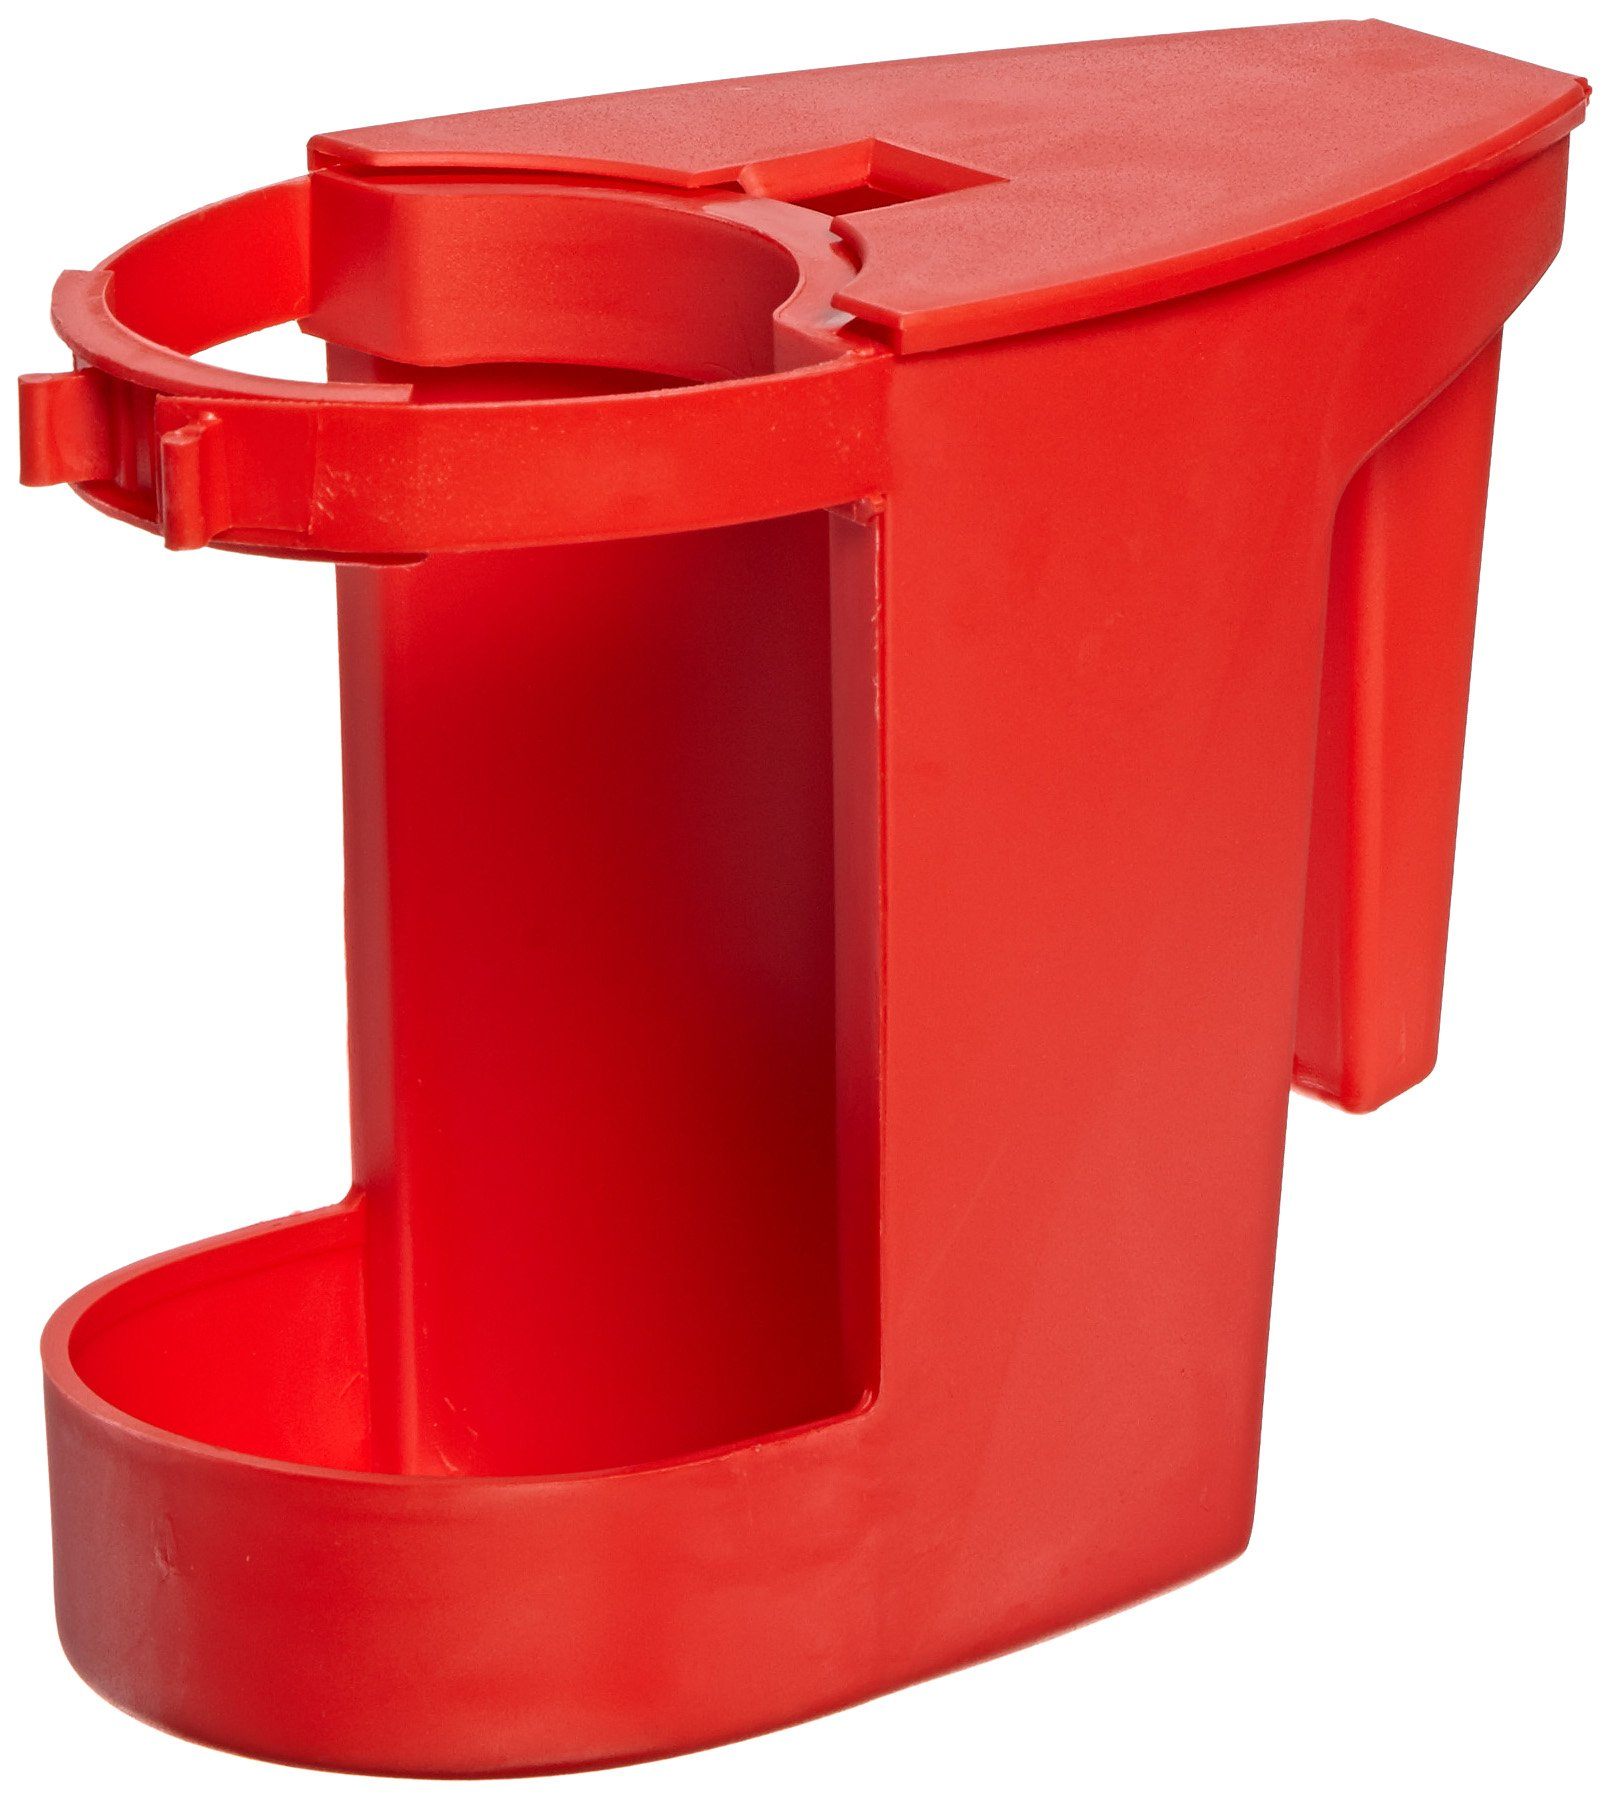 Impact 103 Super Toilet Bowl Caddy, 8'' Length x 4'' Width x 6'' Height, Red (Case of 12)